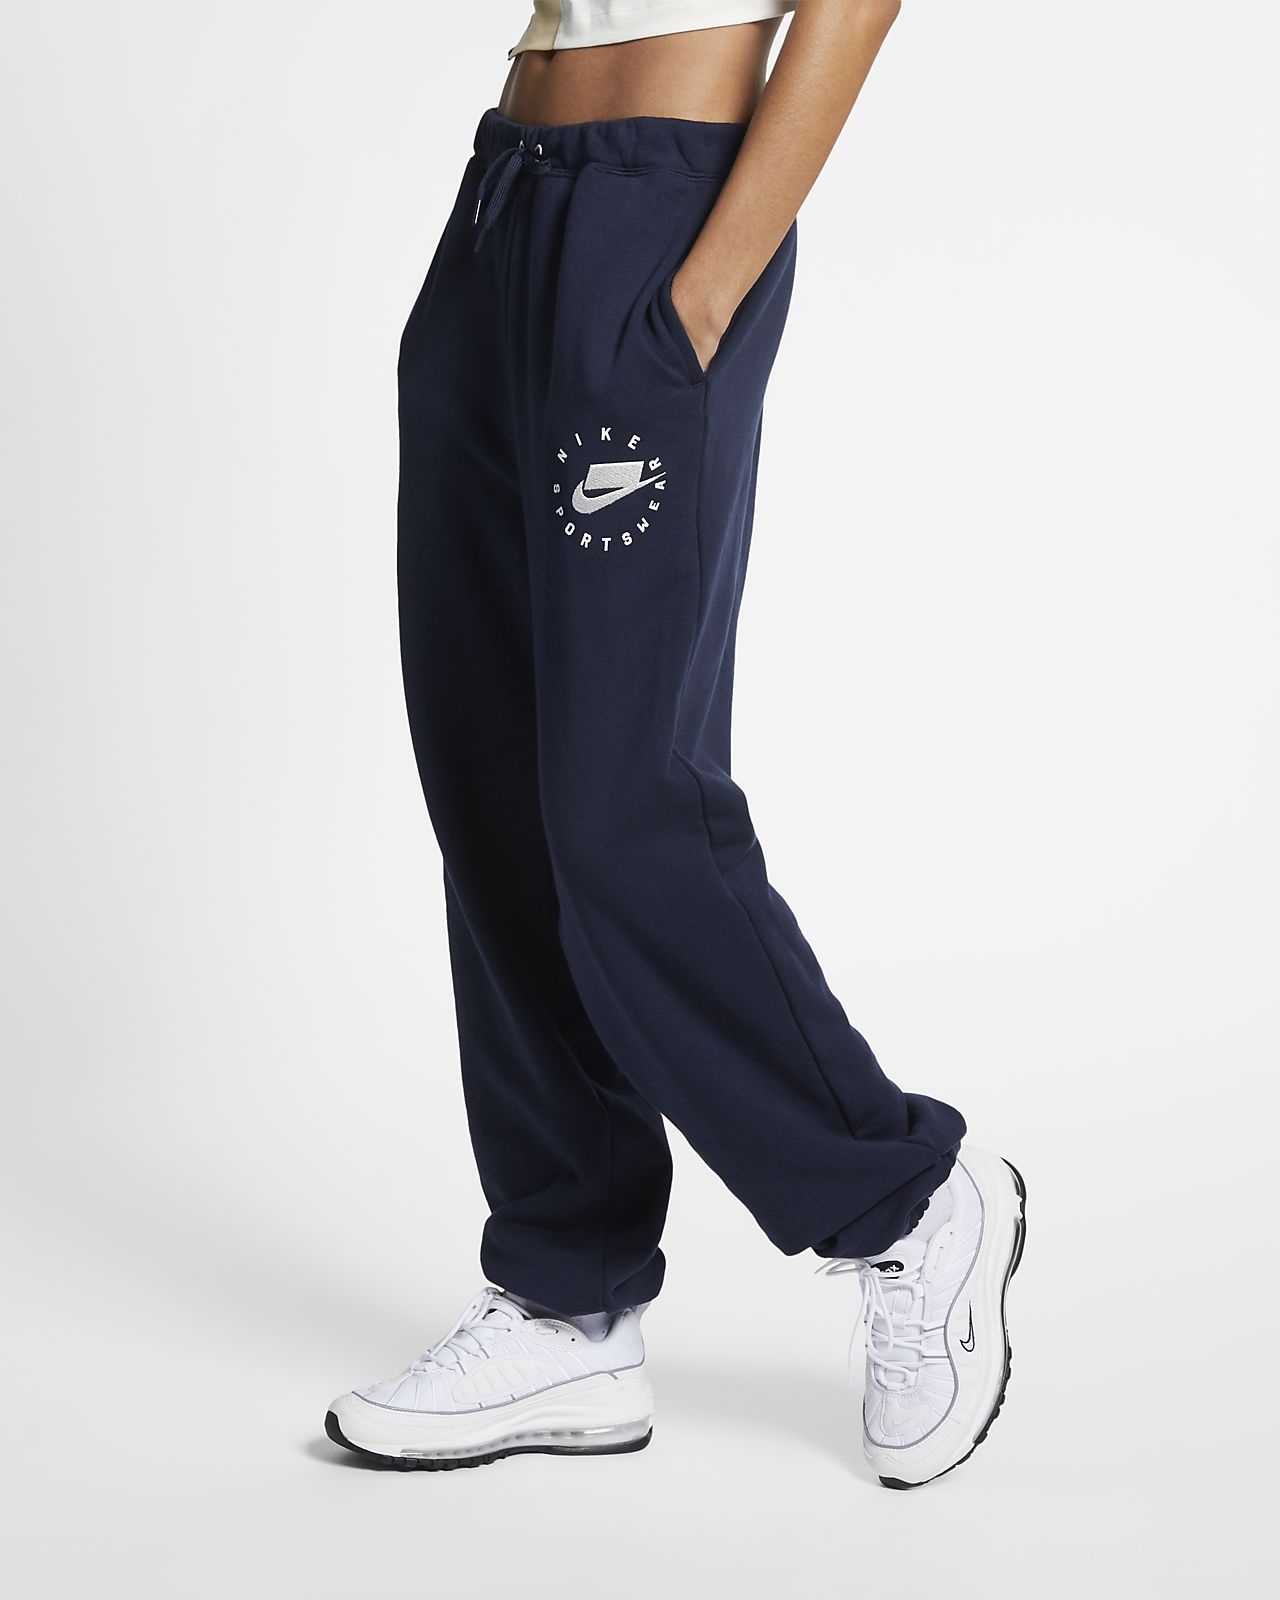 Nike Sportswear NSW Women's French Terry Pants